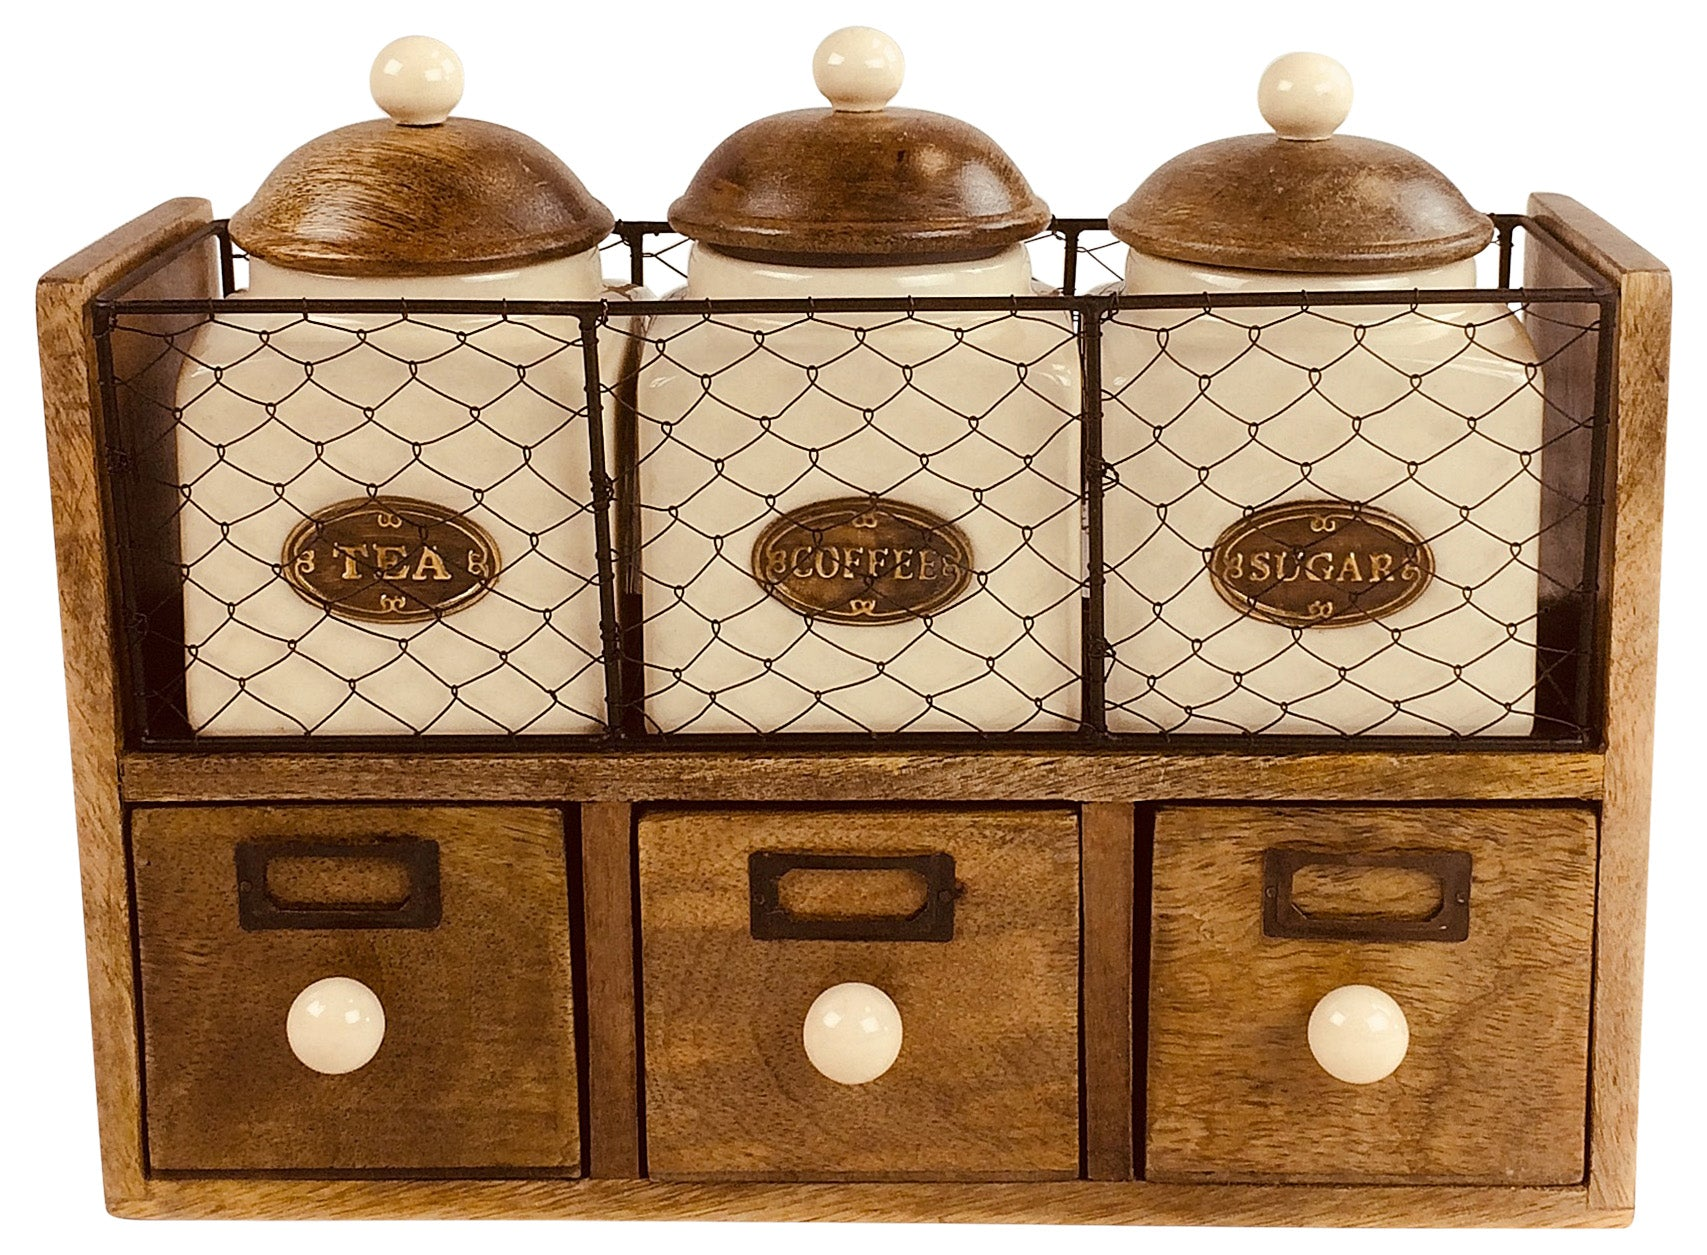 Wooden Cabinet With 3 Jars & Drawers, Furniture by Low Cost Gifts